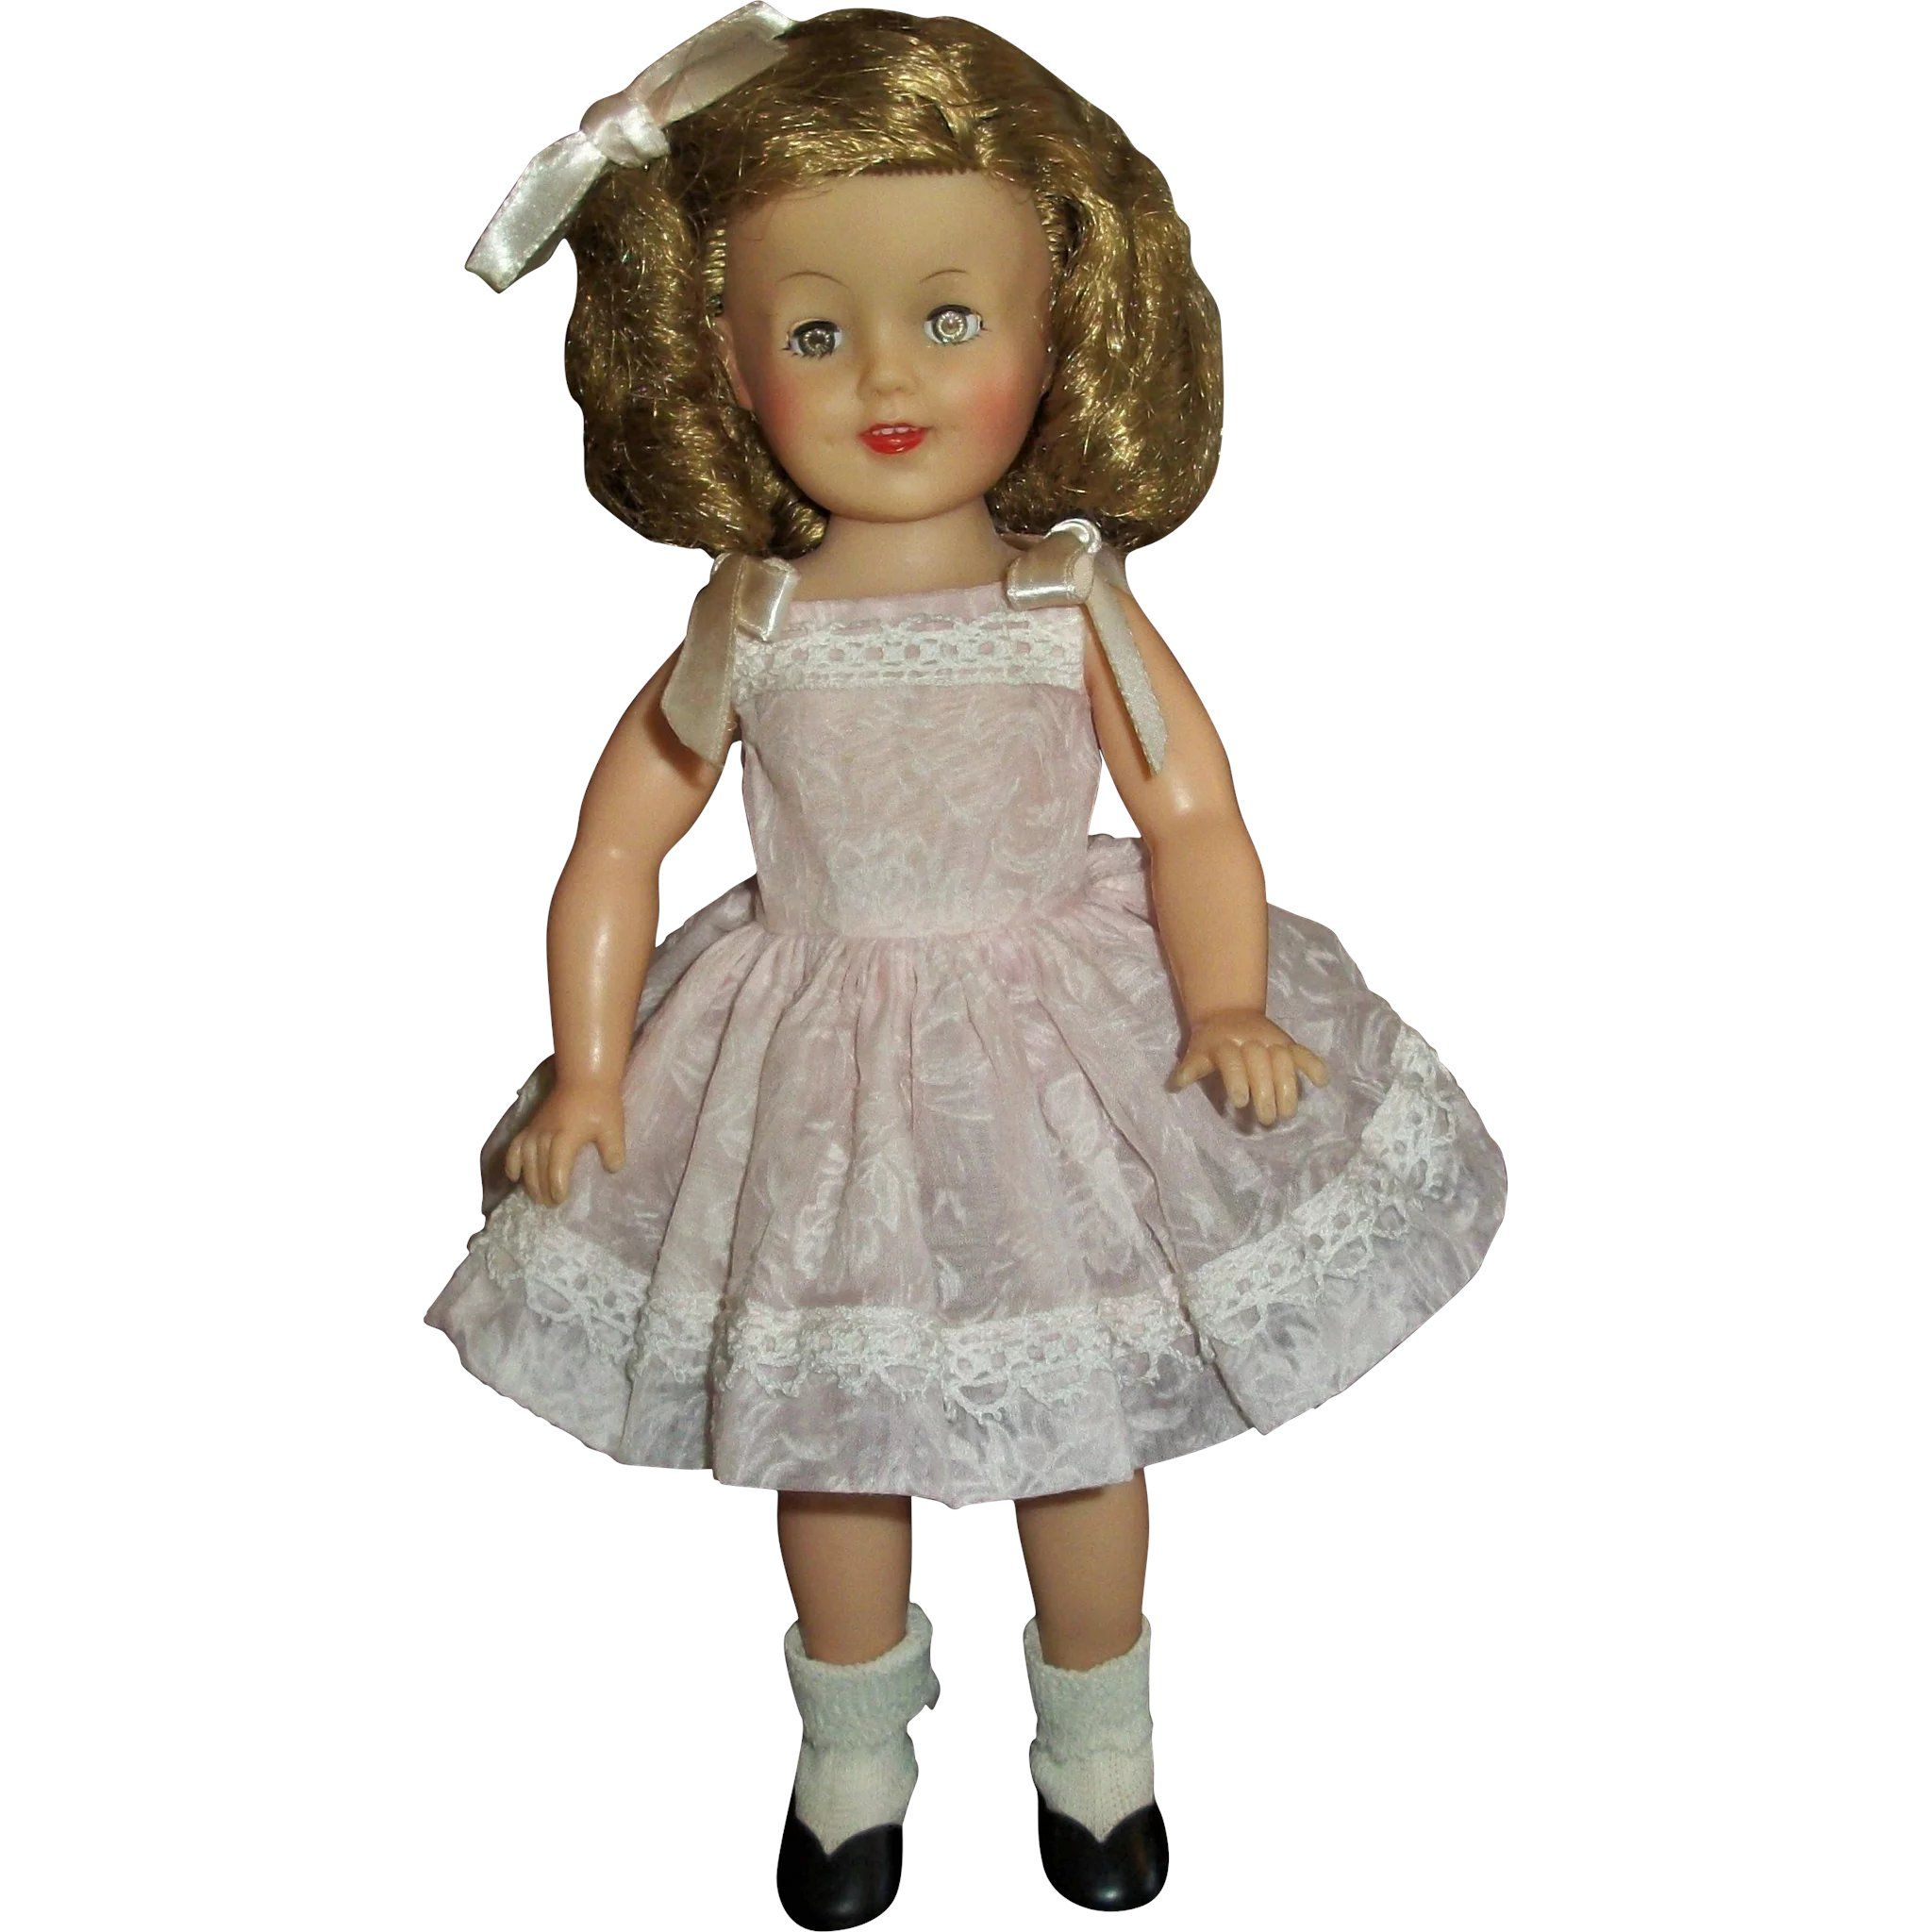 Vintage Ideal Vinyl 12 Shirley Temple Wearing Original Flocked Sundress Shirley Temple Doll Clothes Sundress